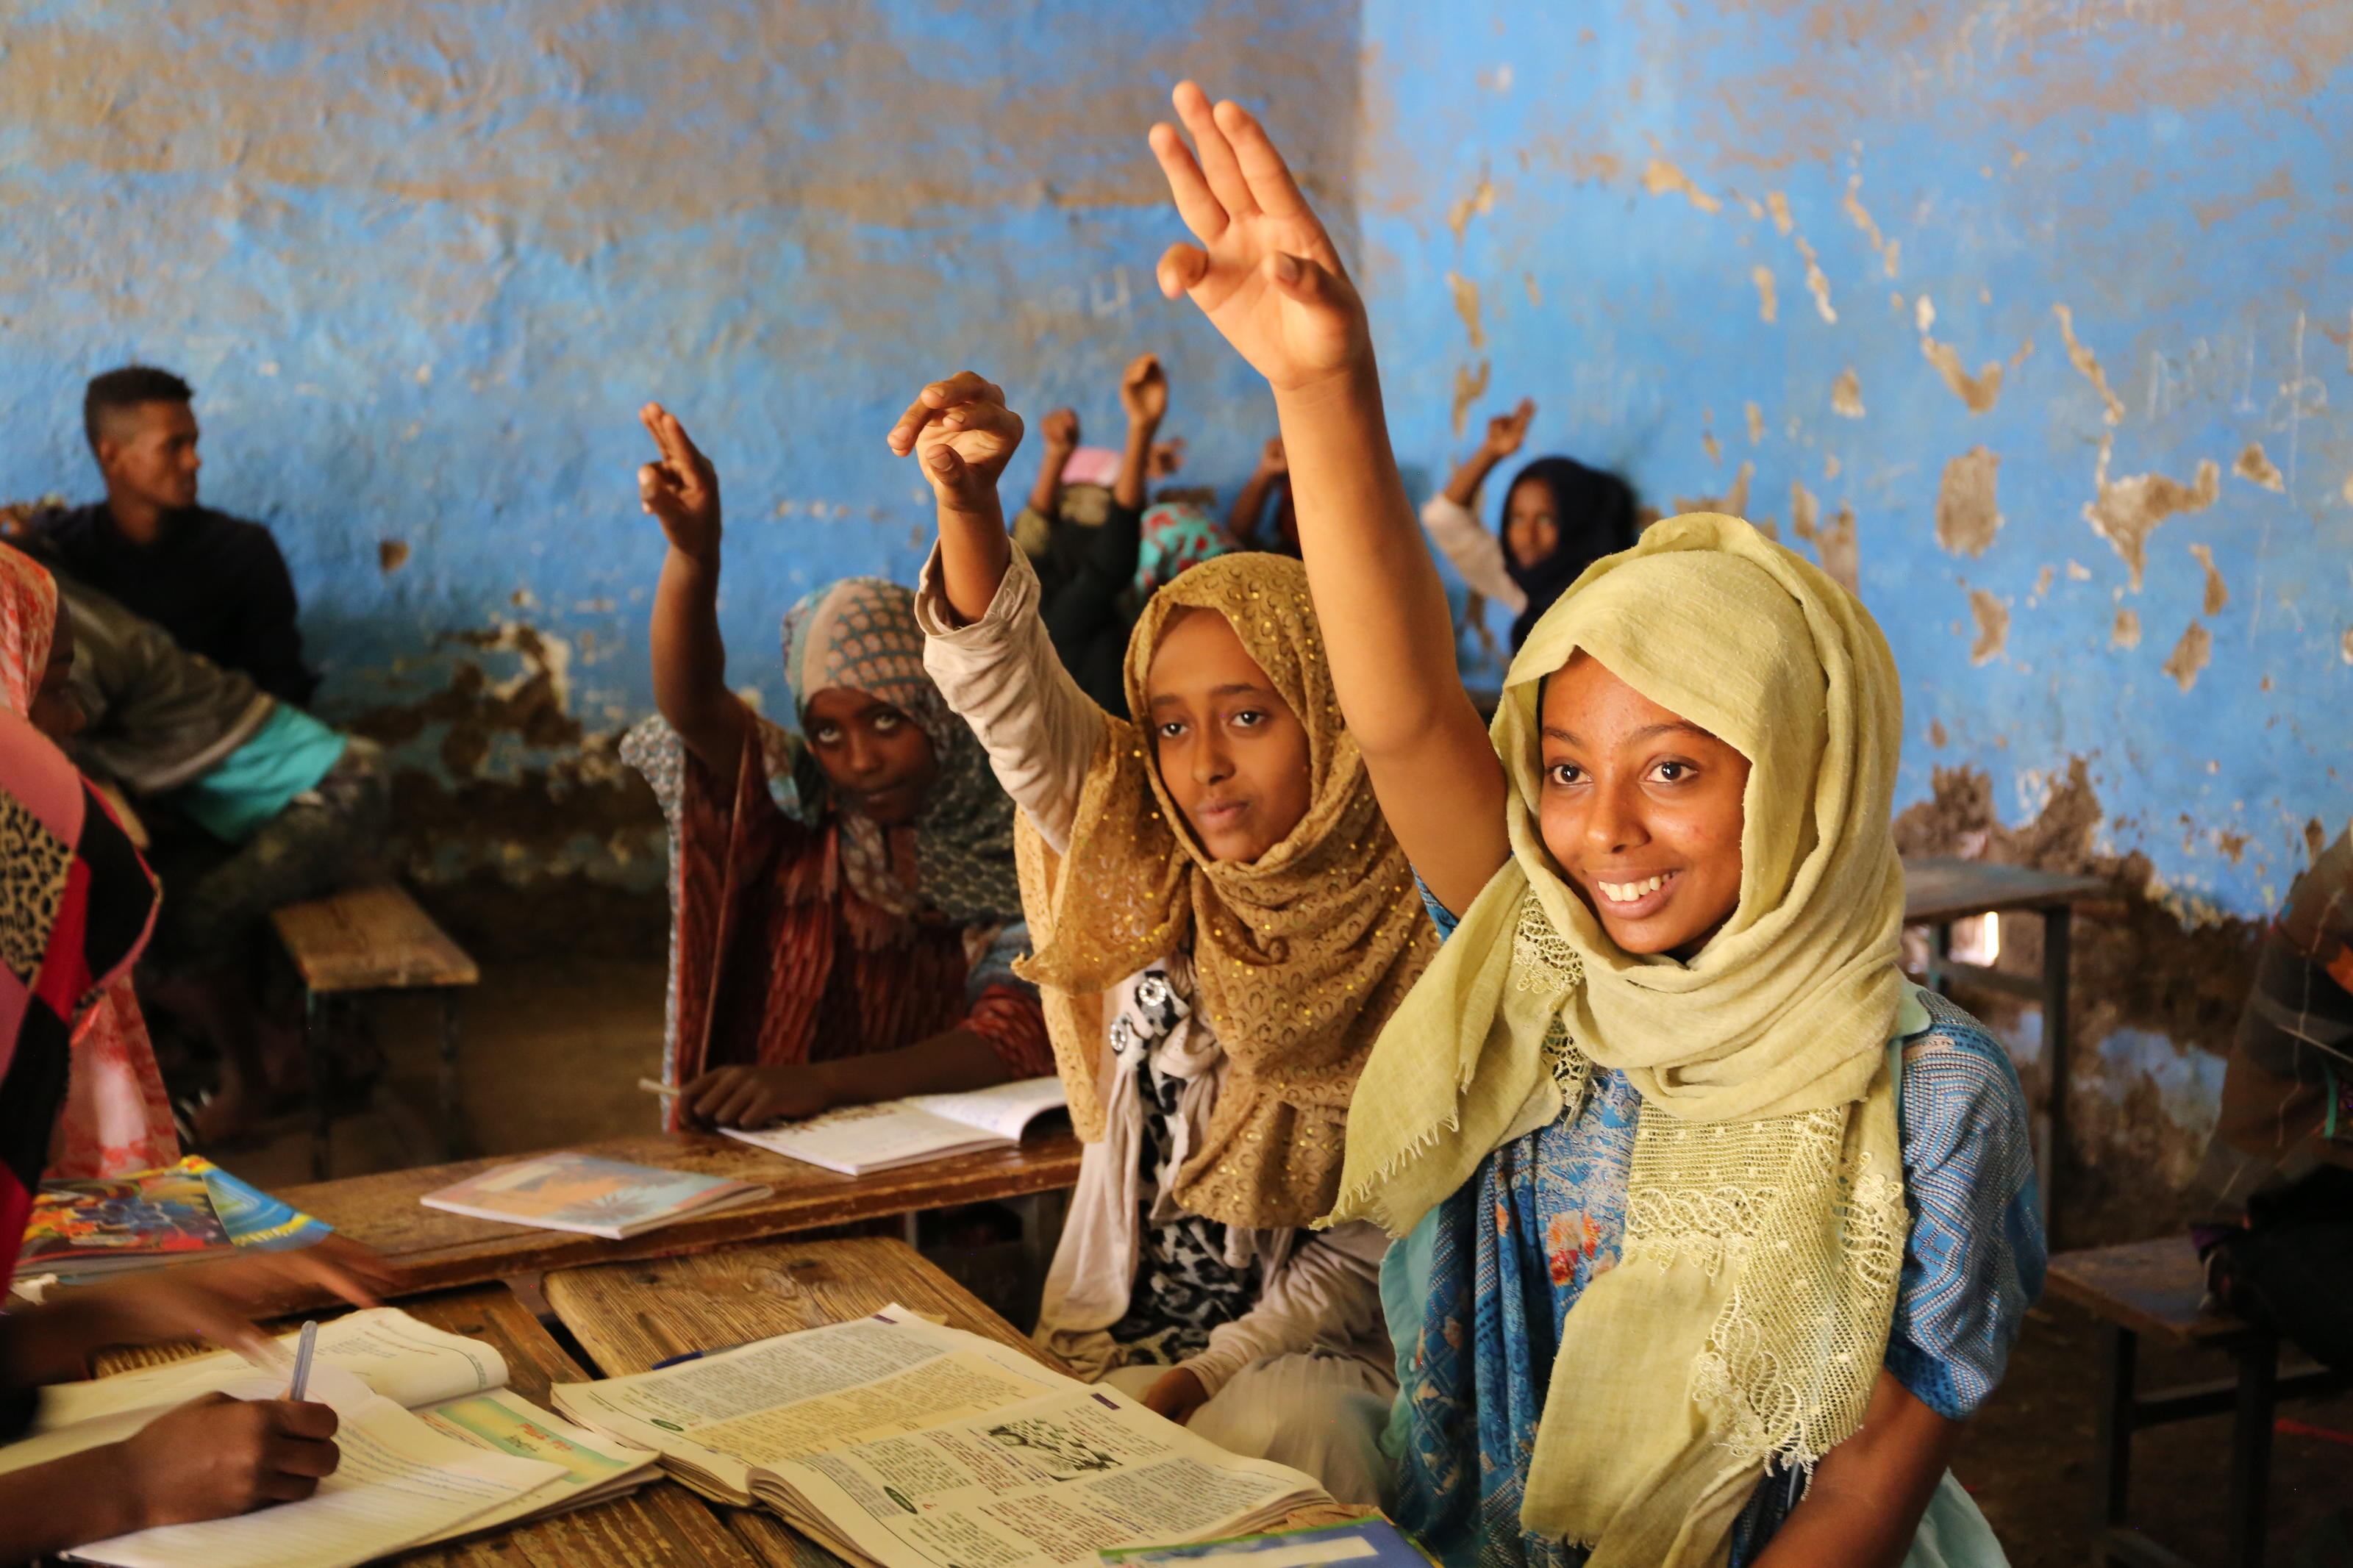 Ikram, an eighth grade student and member of the Hygiene and Sanitation Club, puts her hand up in class at her primary school in South Welo, Amhara, Ethiopia.